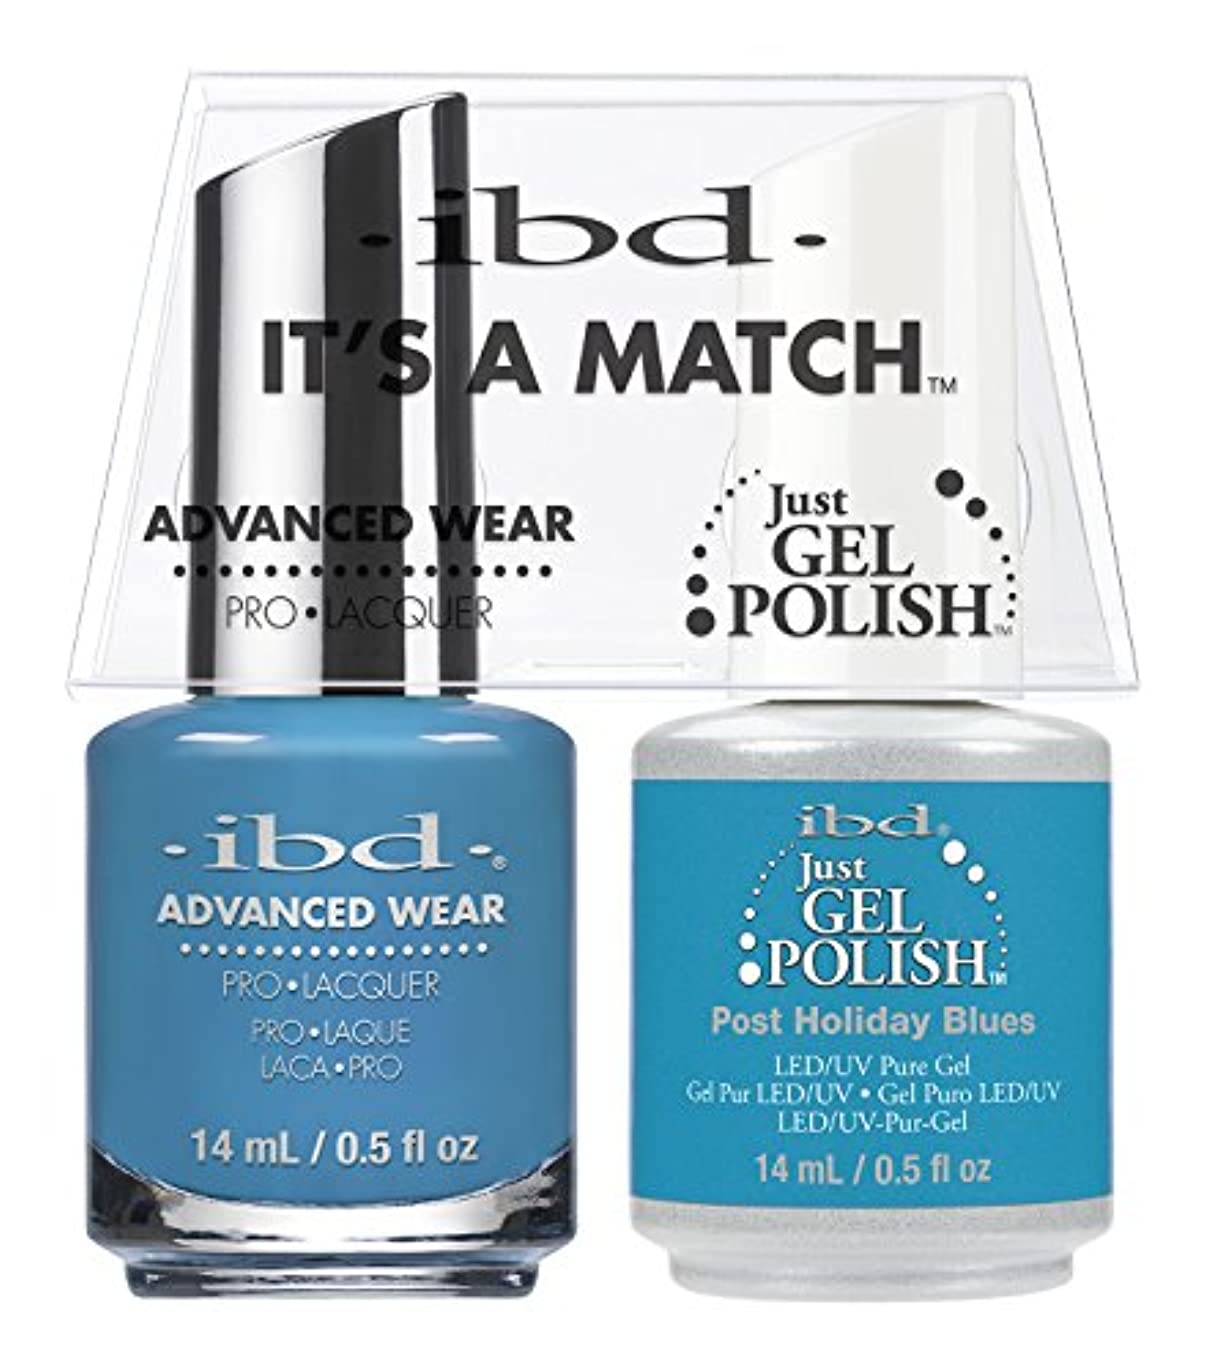 ibd - It's A Match -Duo Pack- Post Holiday Blues - 14 mL / 0.5 oz Each